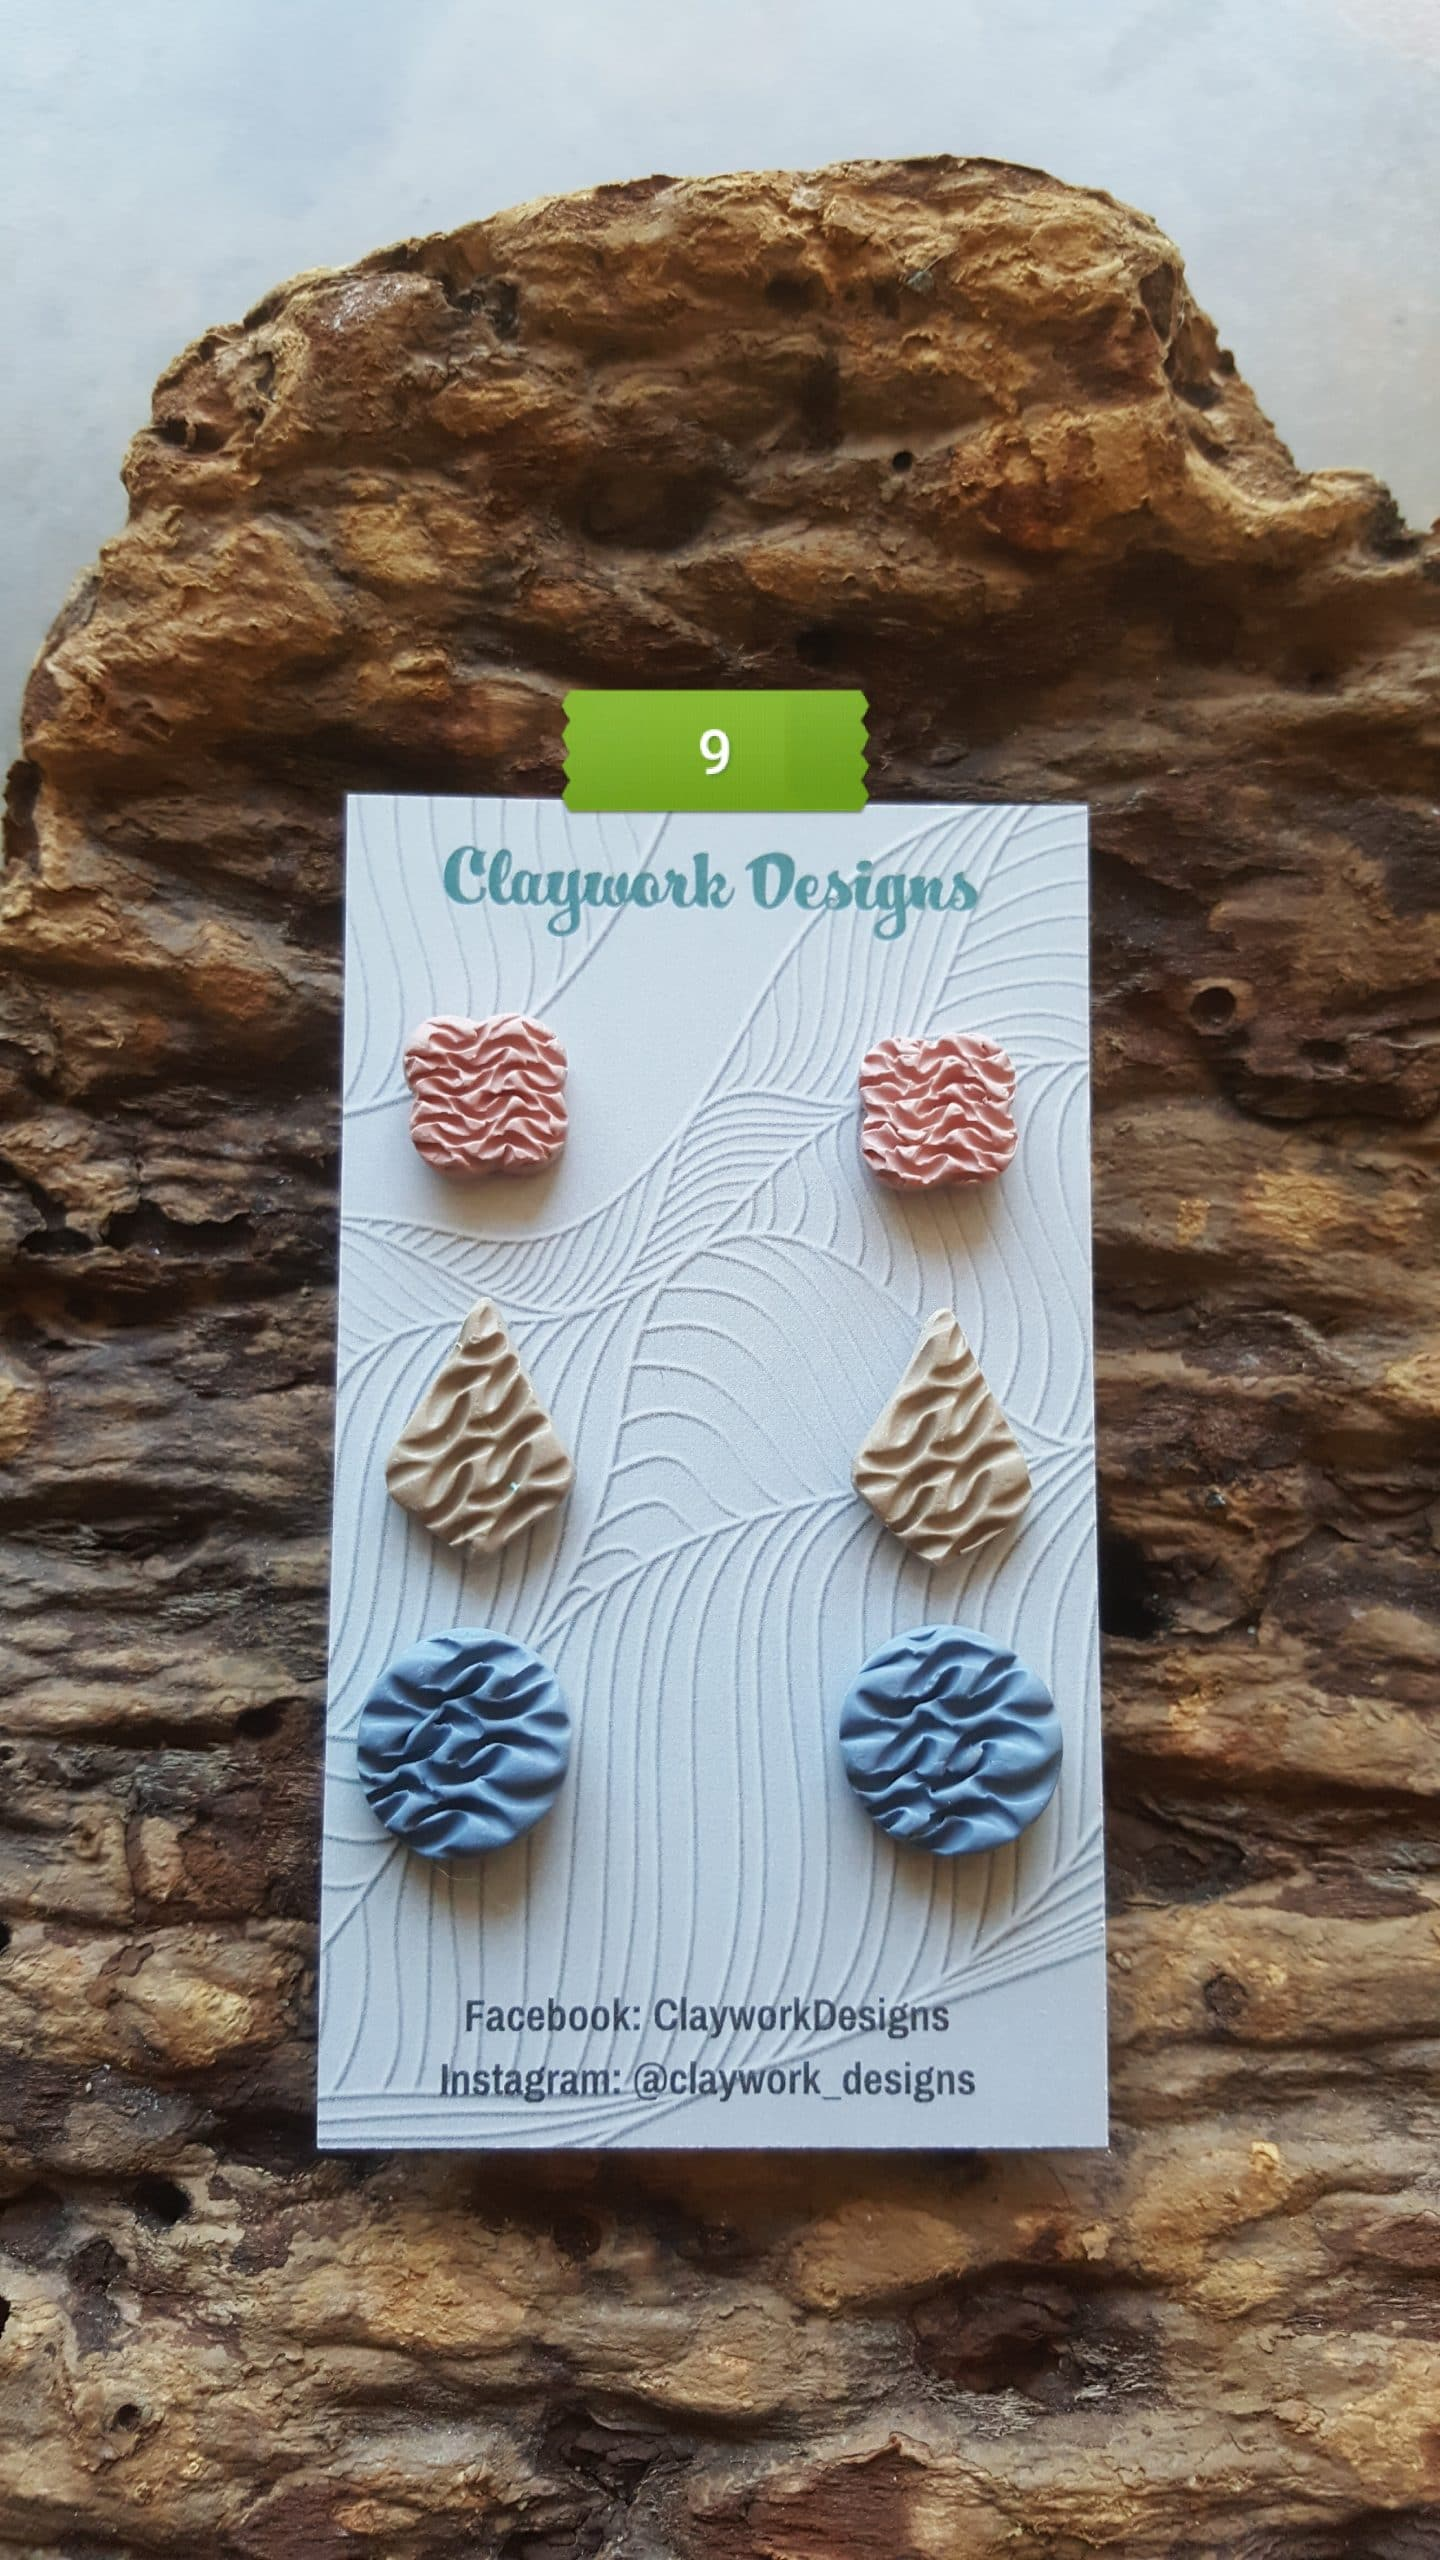 Wirework Designs | Handcrafted chainmaille jewellery and chainmaille products | Chainmaille Weave Stud Earring - 3 Packs | 20210620_172348